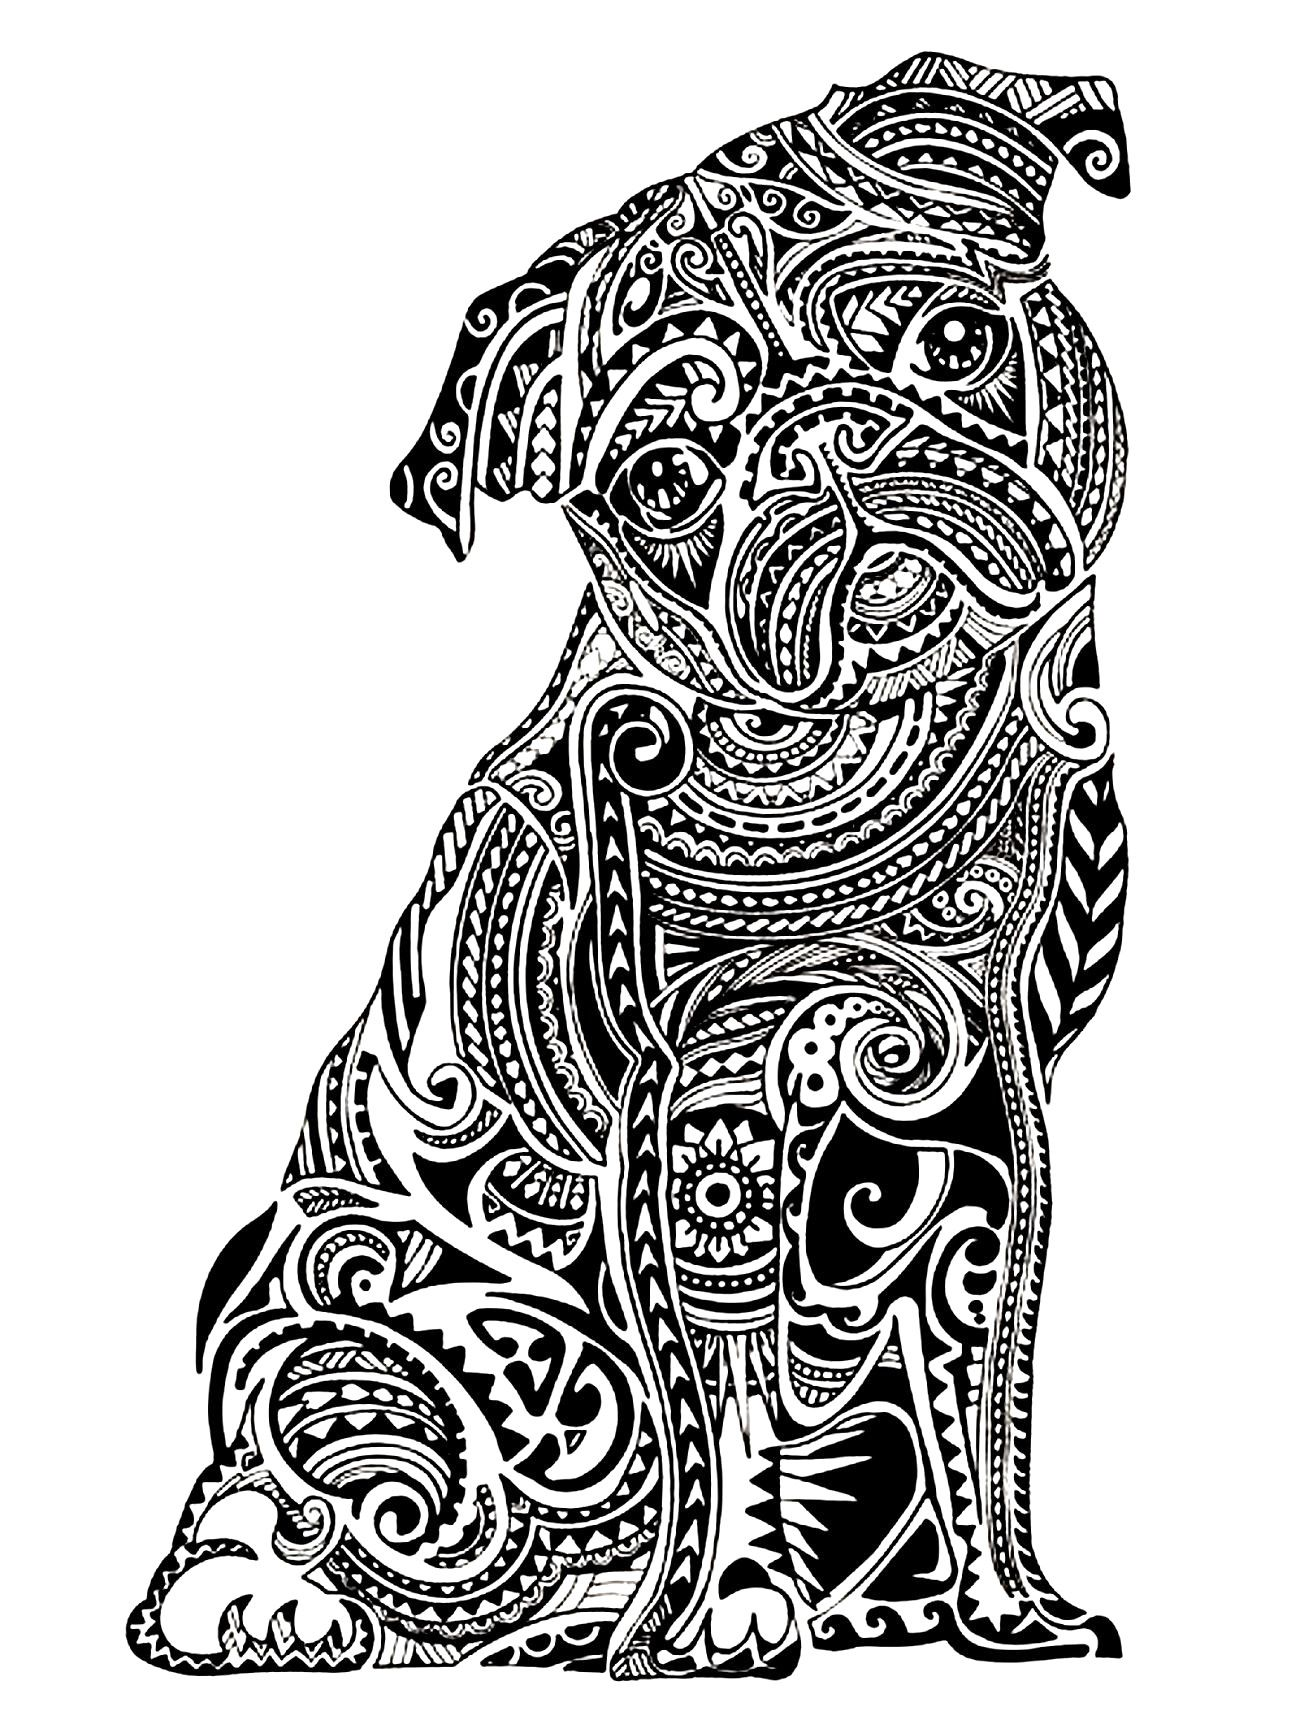 Complicated Animal Coloring Pages Download For Adults Difficult Animals Of Pug Art Print Pug Art Dog Coloring Page